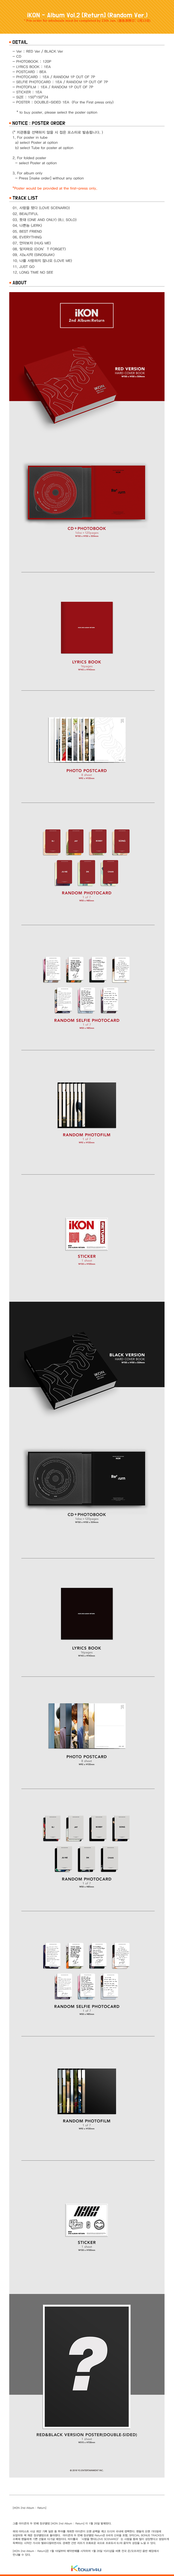 iKON - Album Vol.2 [Return] (Random Ver.)